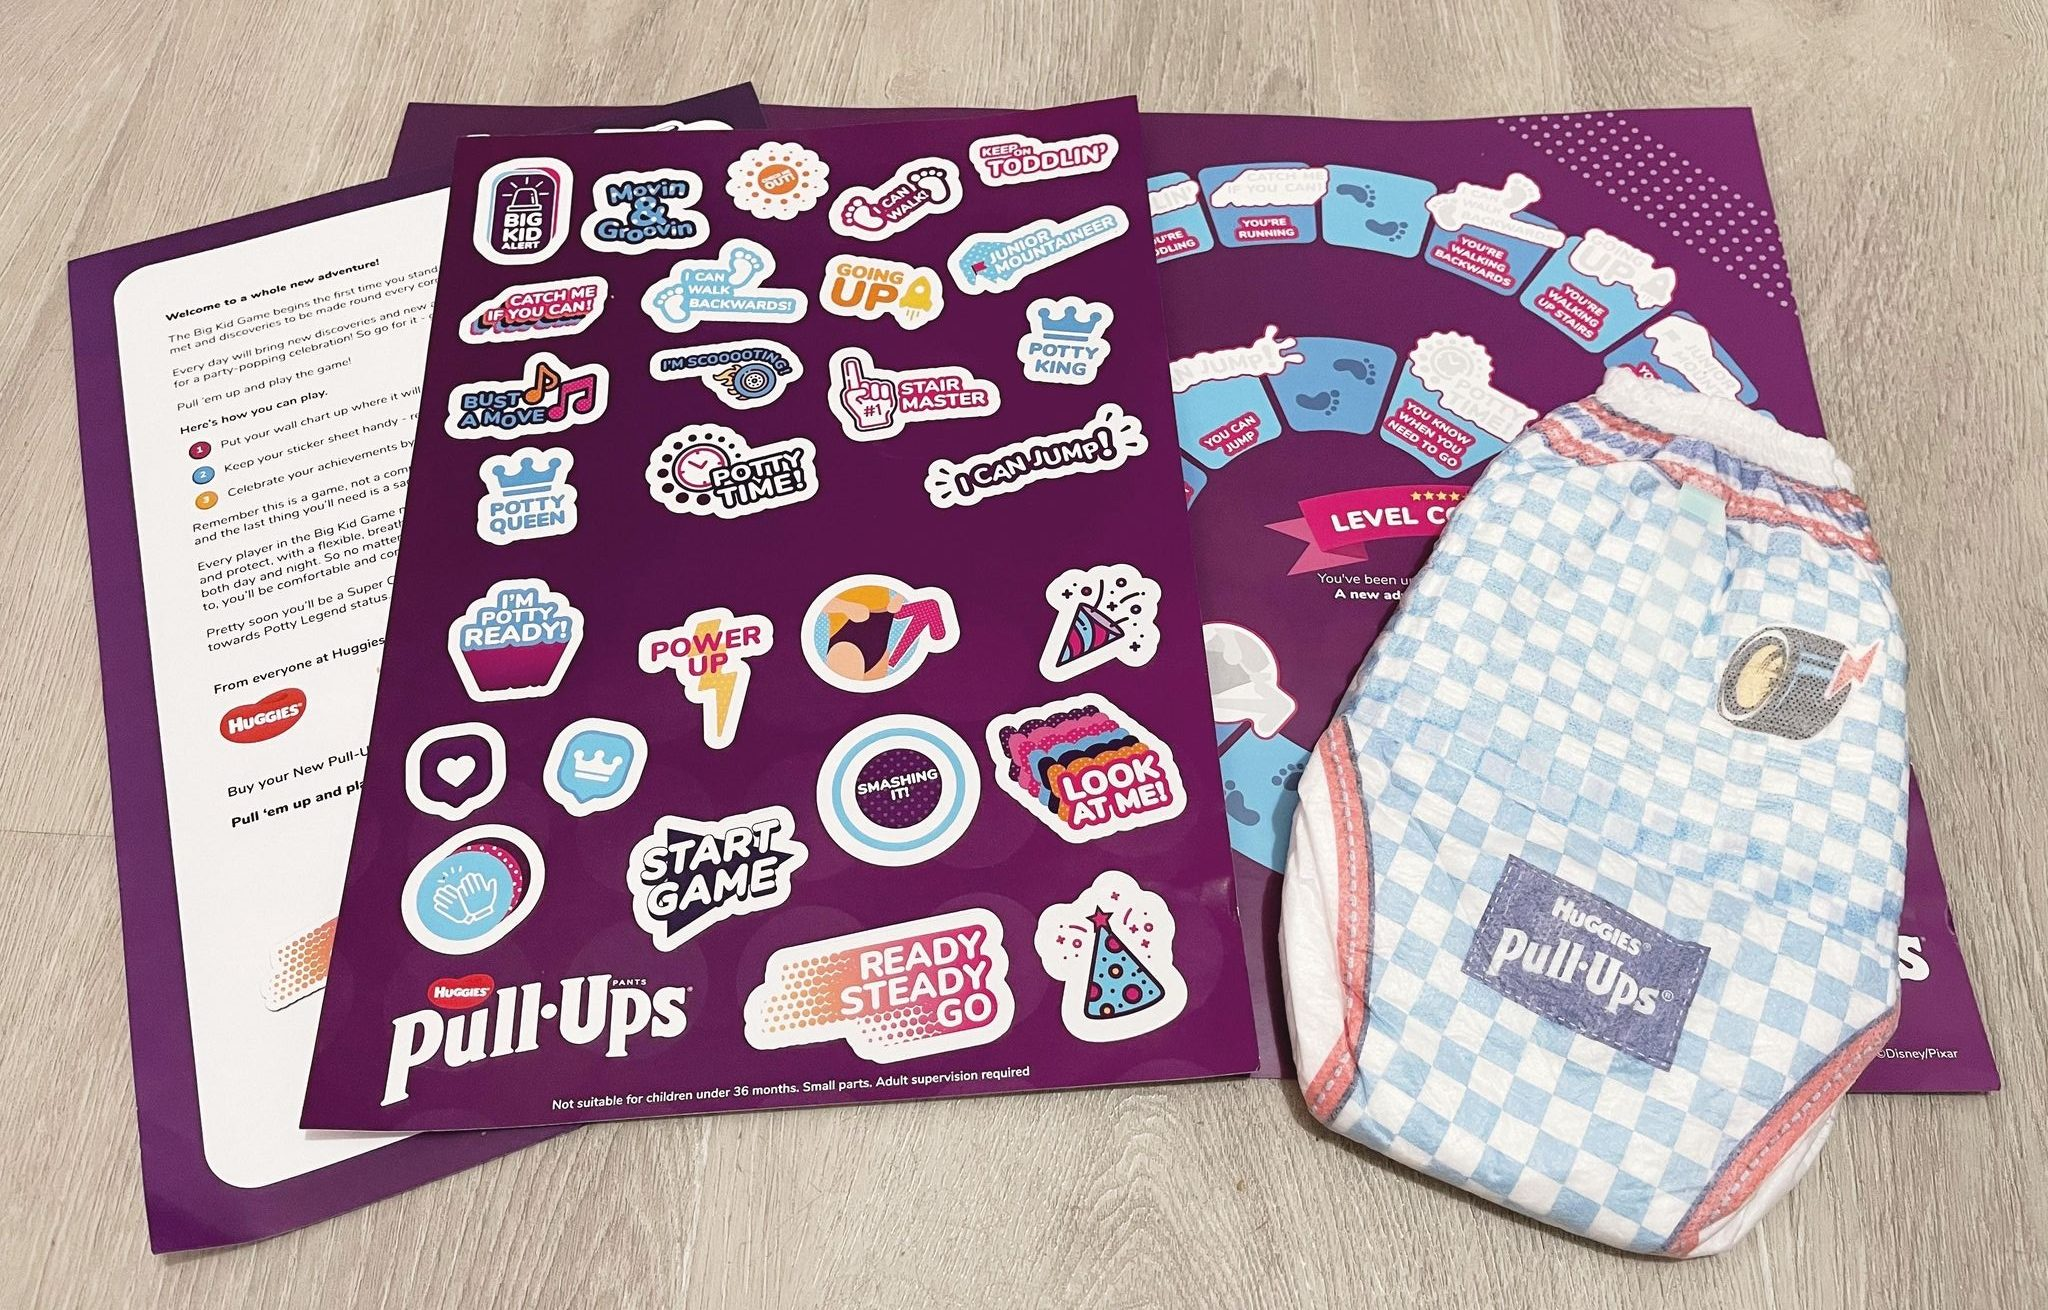 Free Potty Training Game Pack from Huggies Pull-ups